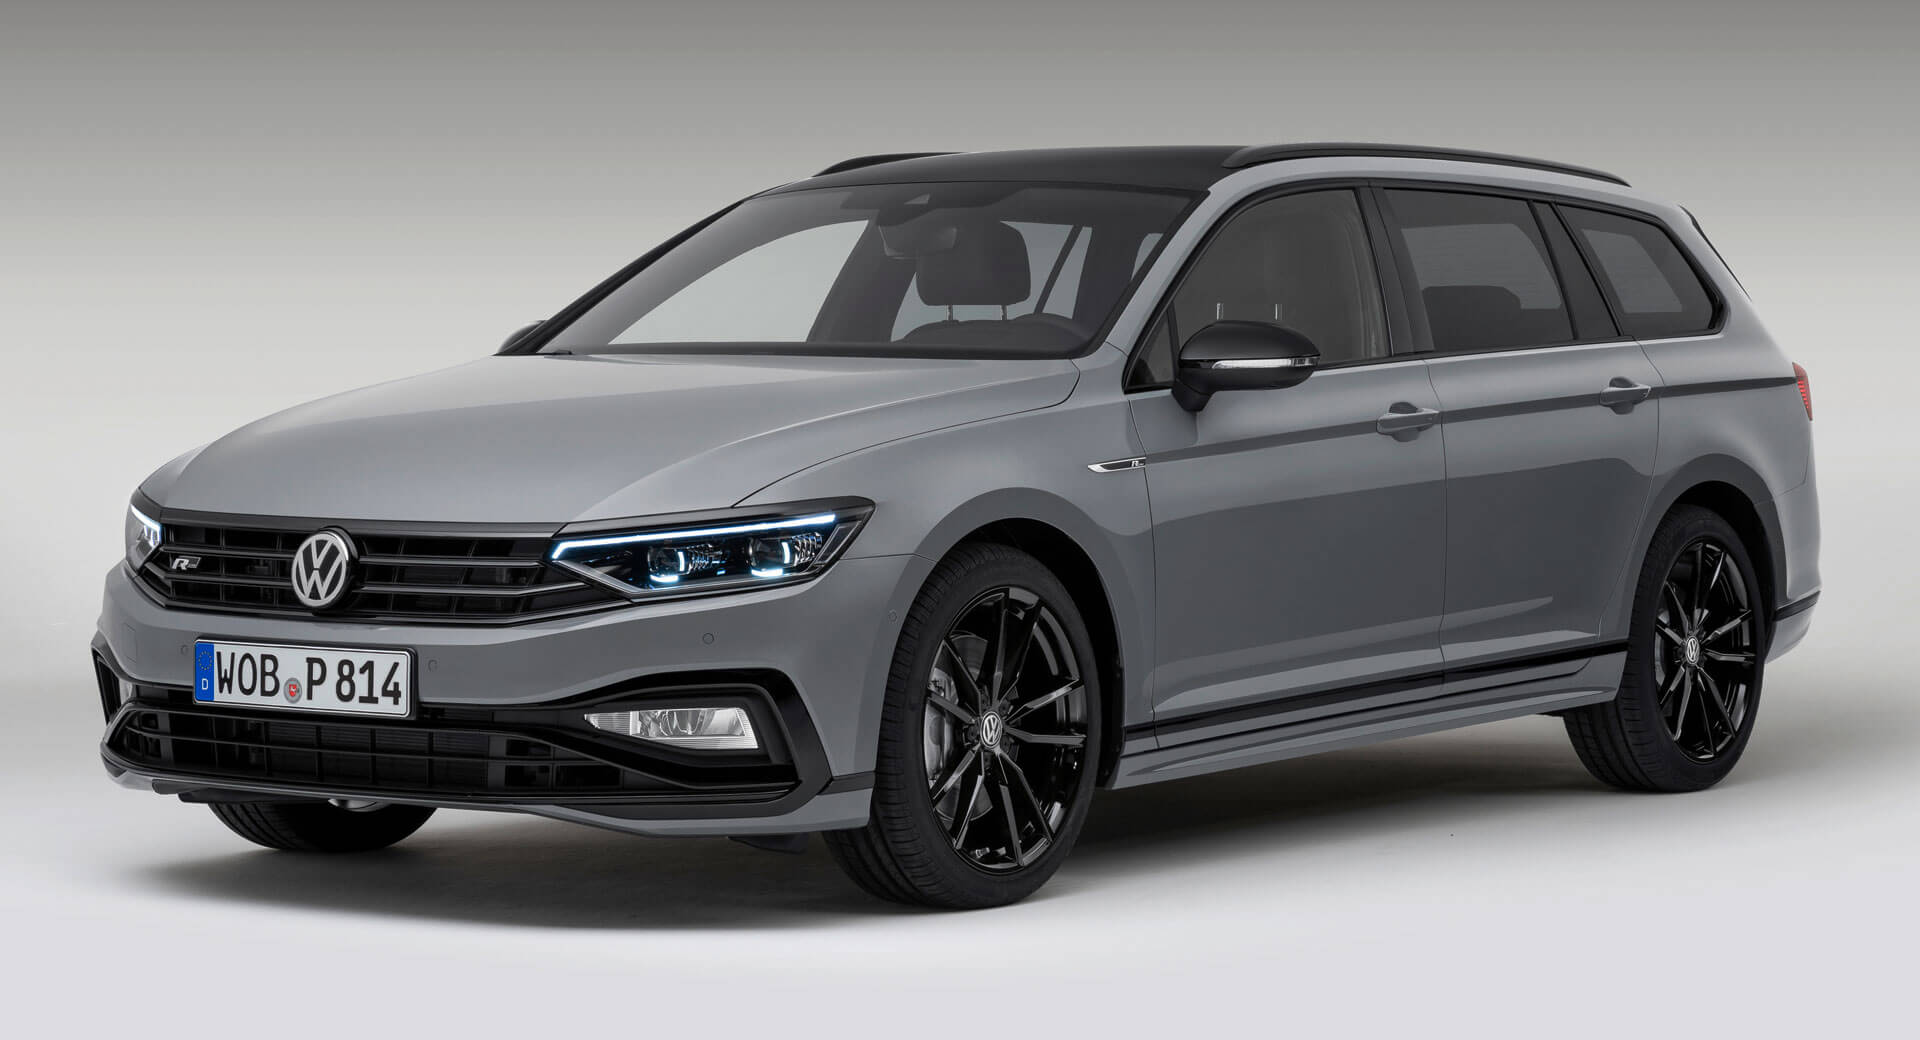 2020 Vw Passat Variant R Line Edition Is Inconspicuous In A Good Way Live Pics Carscoops